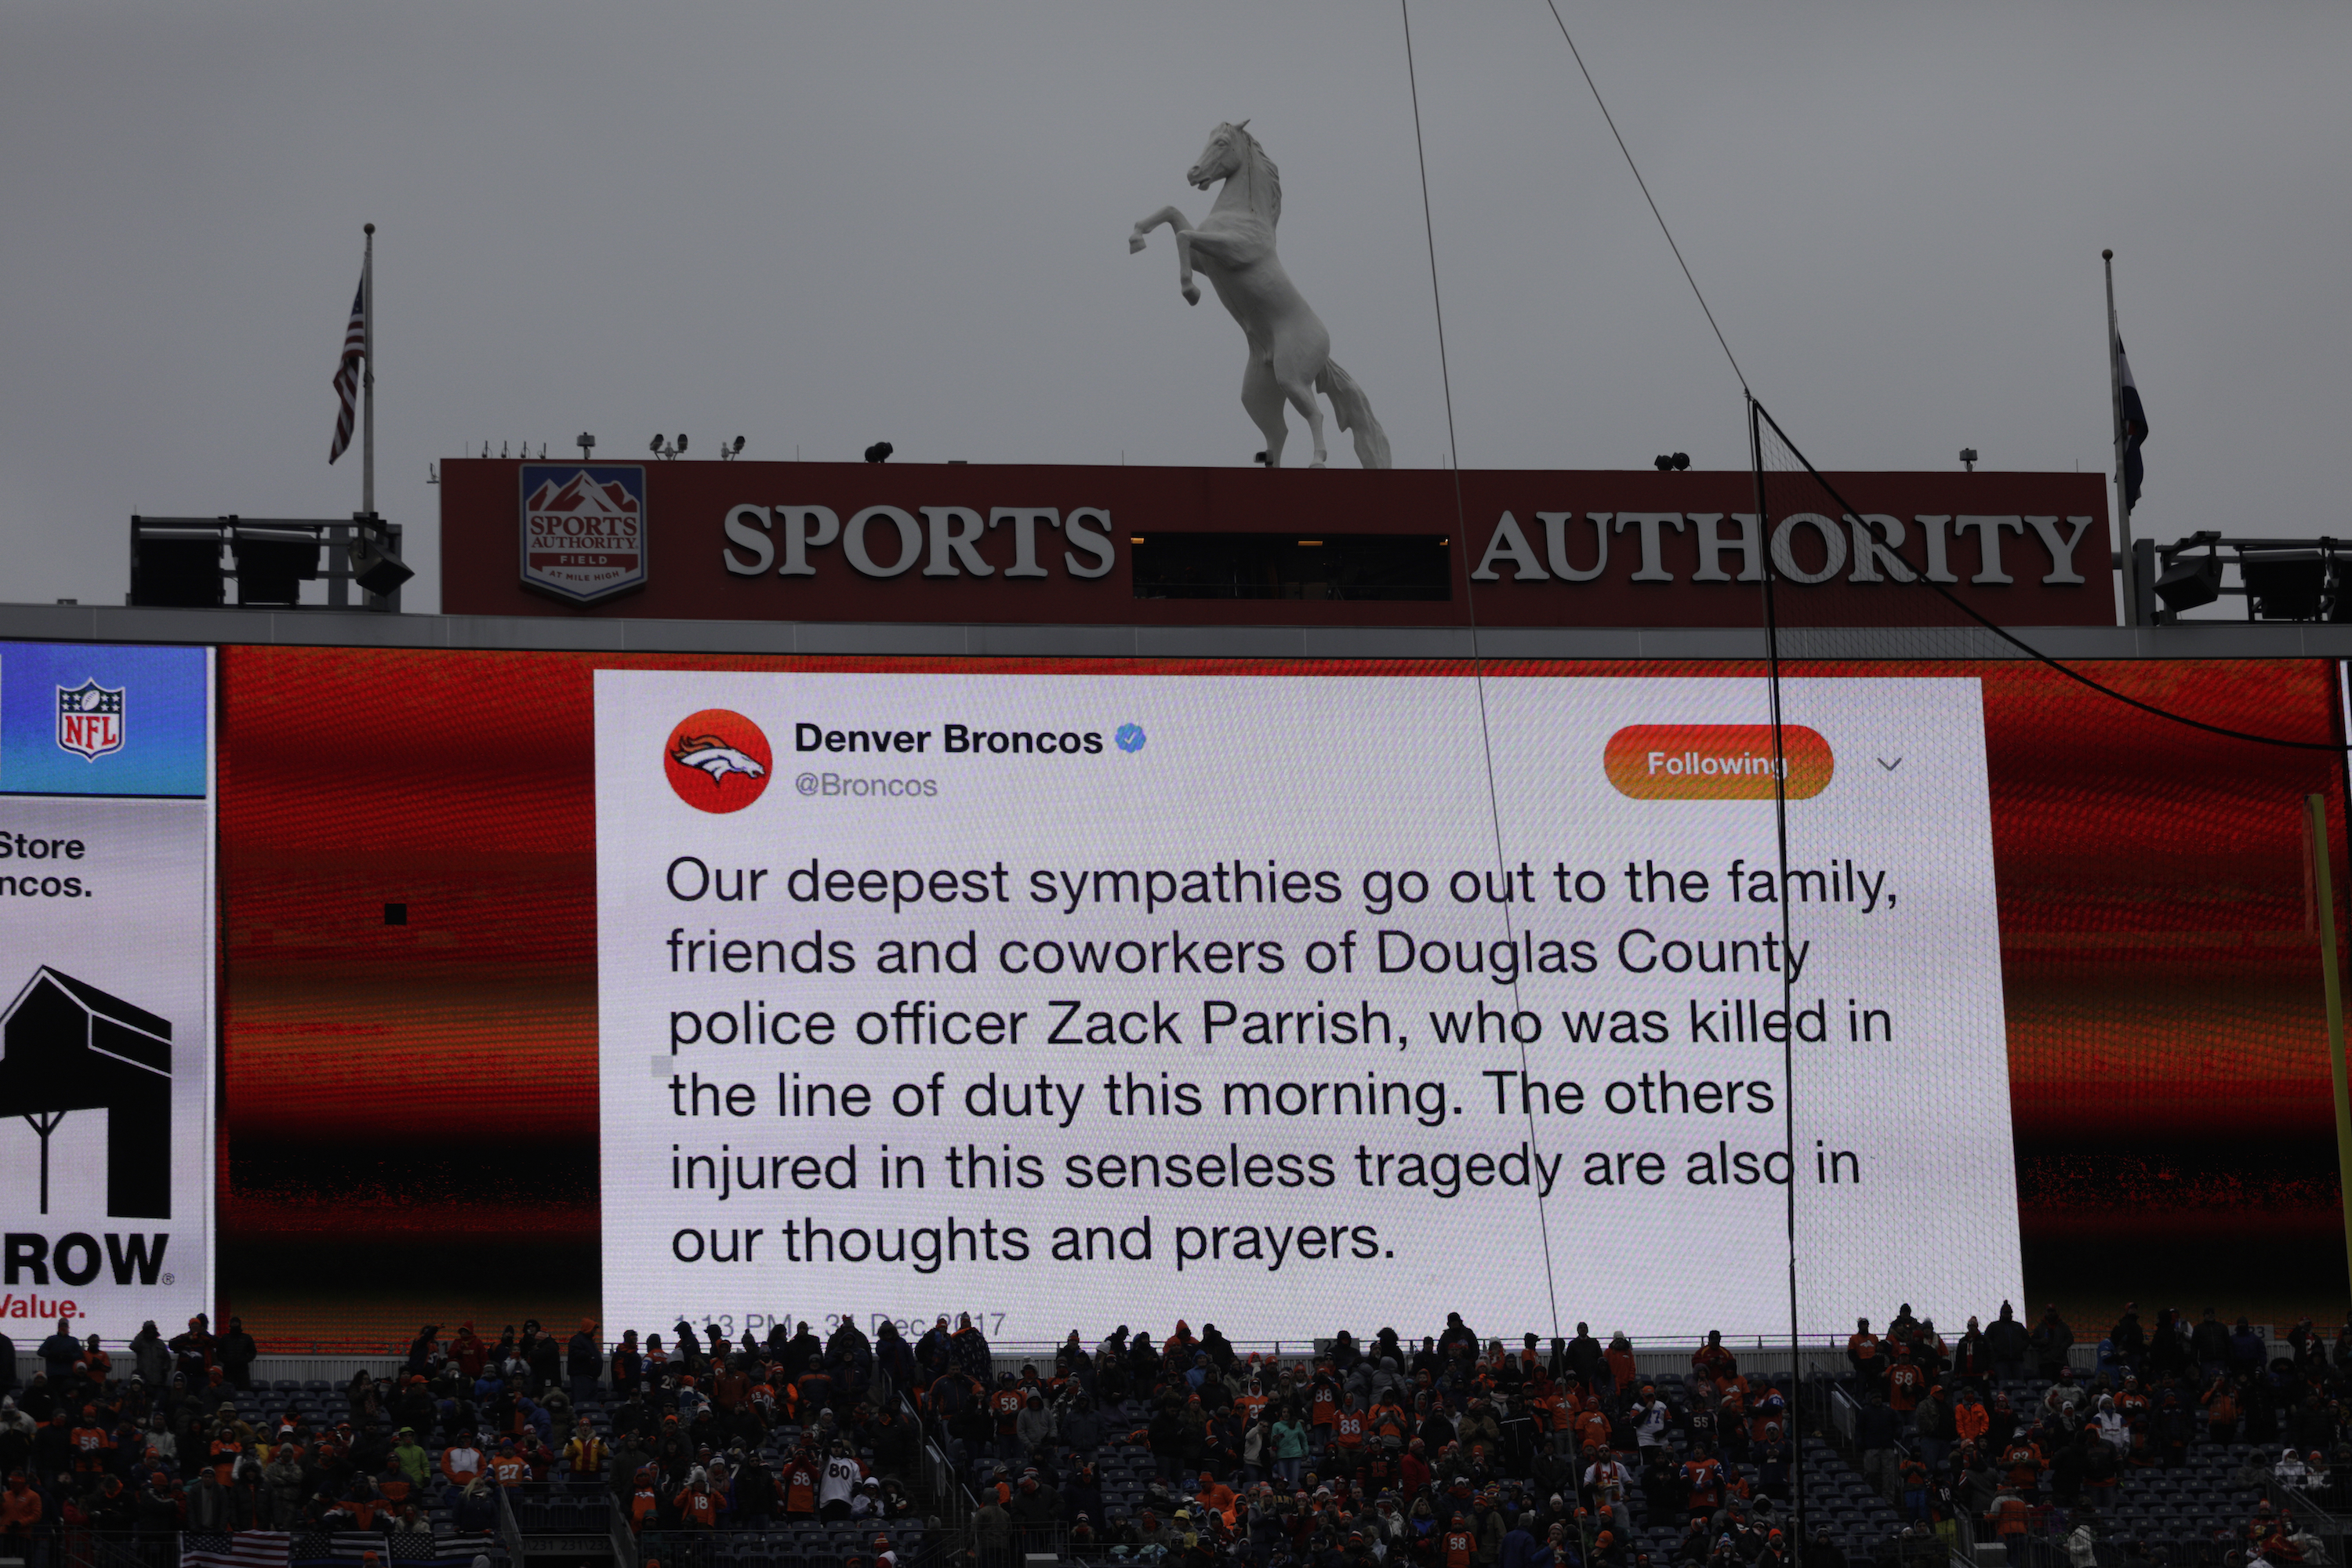 Photo: Douglas County Deputy Shot, AP Photo 4 Broncos